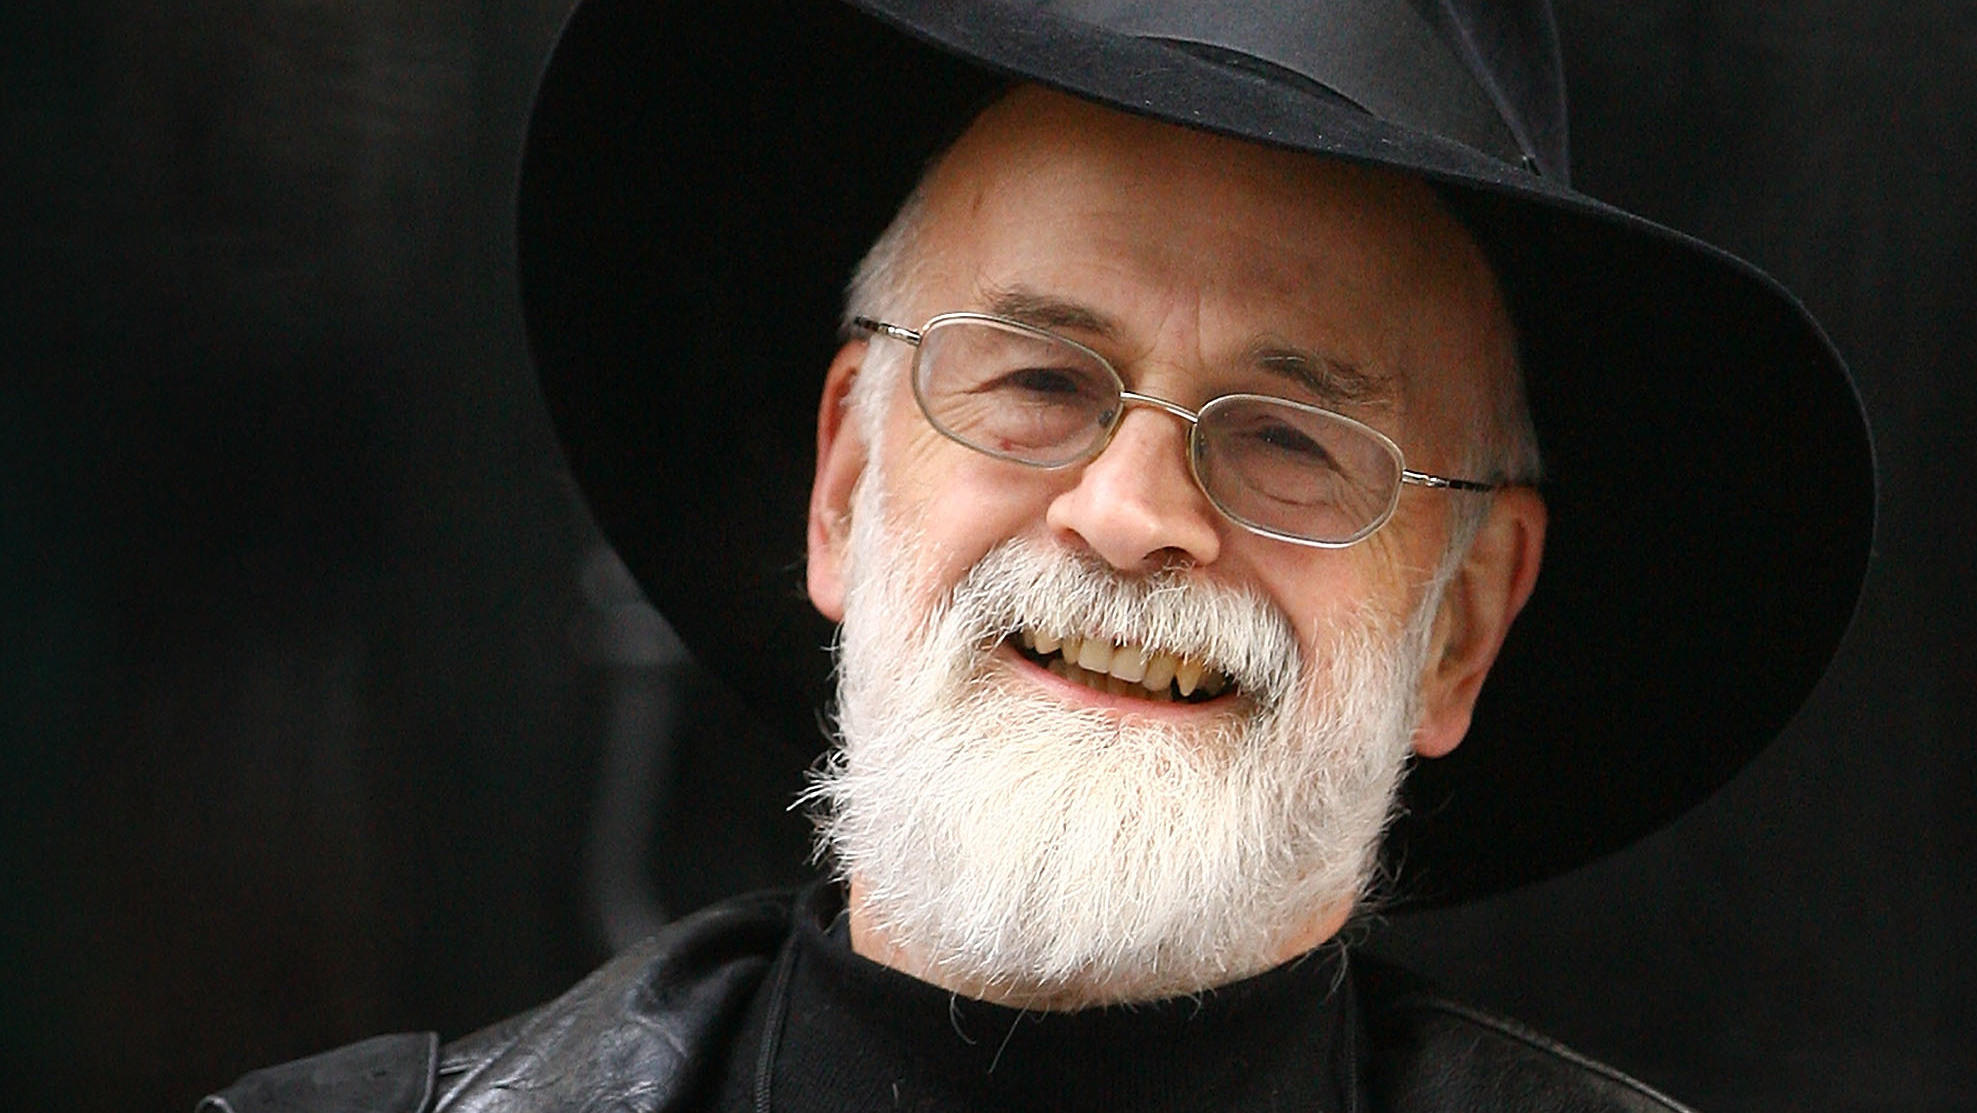 Terry Pratchett's unfinished novels run over by a steamroller